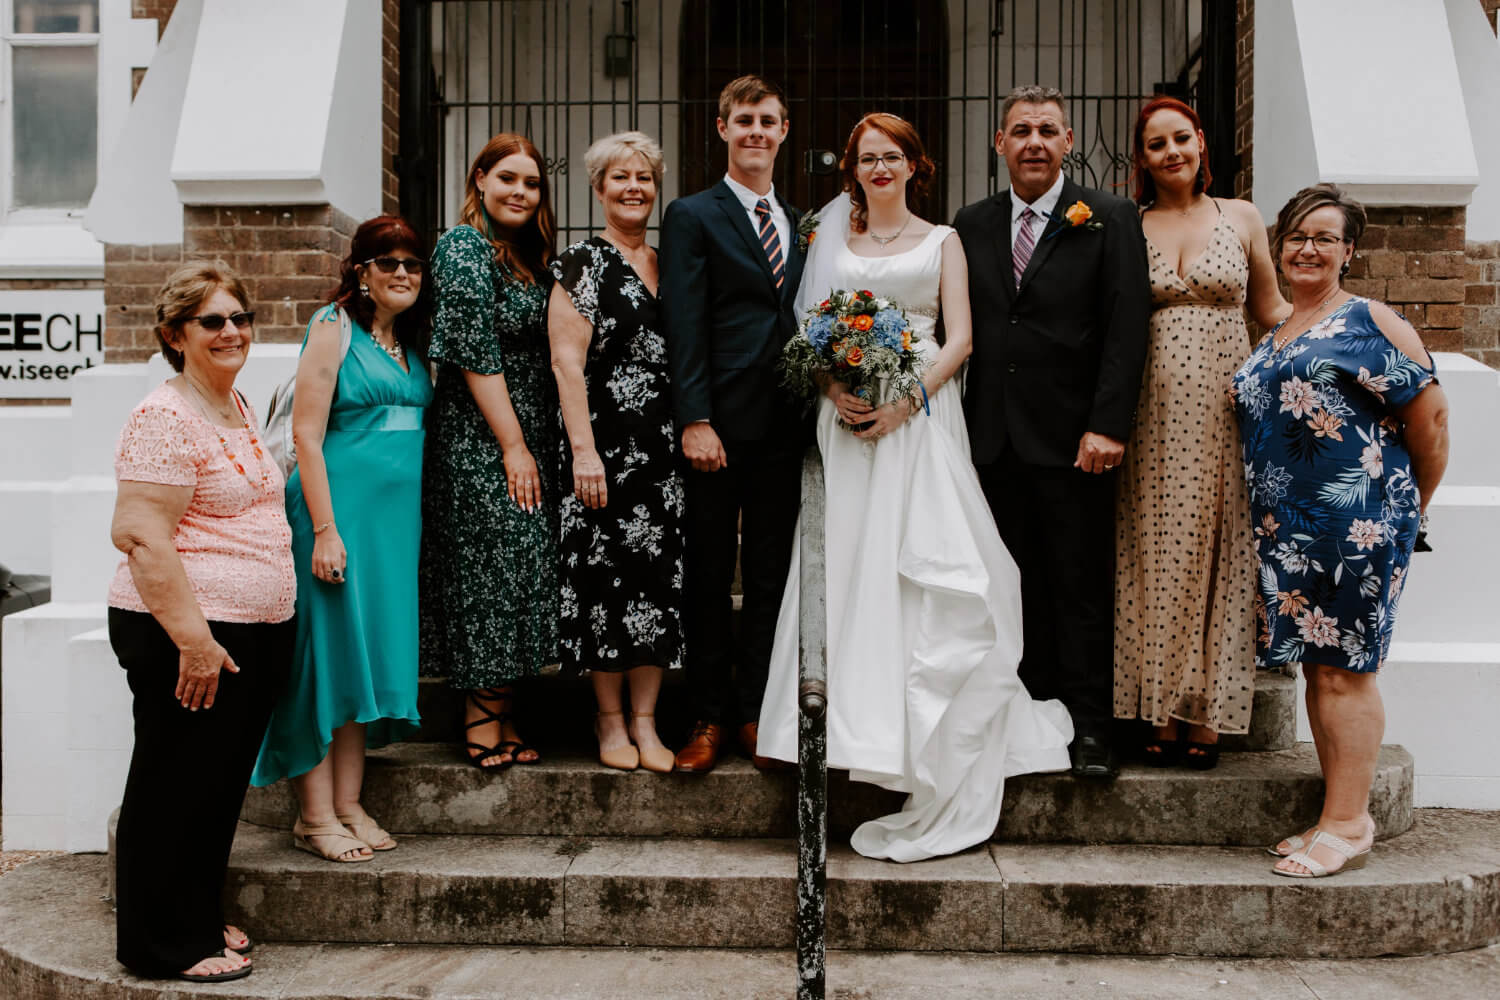 How to Make Family-Photos Easier at Your Wedding Best Wedding Day Tips and Tricks 2